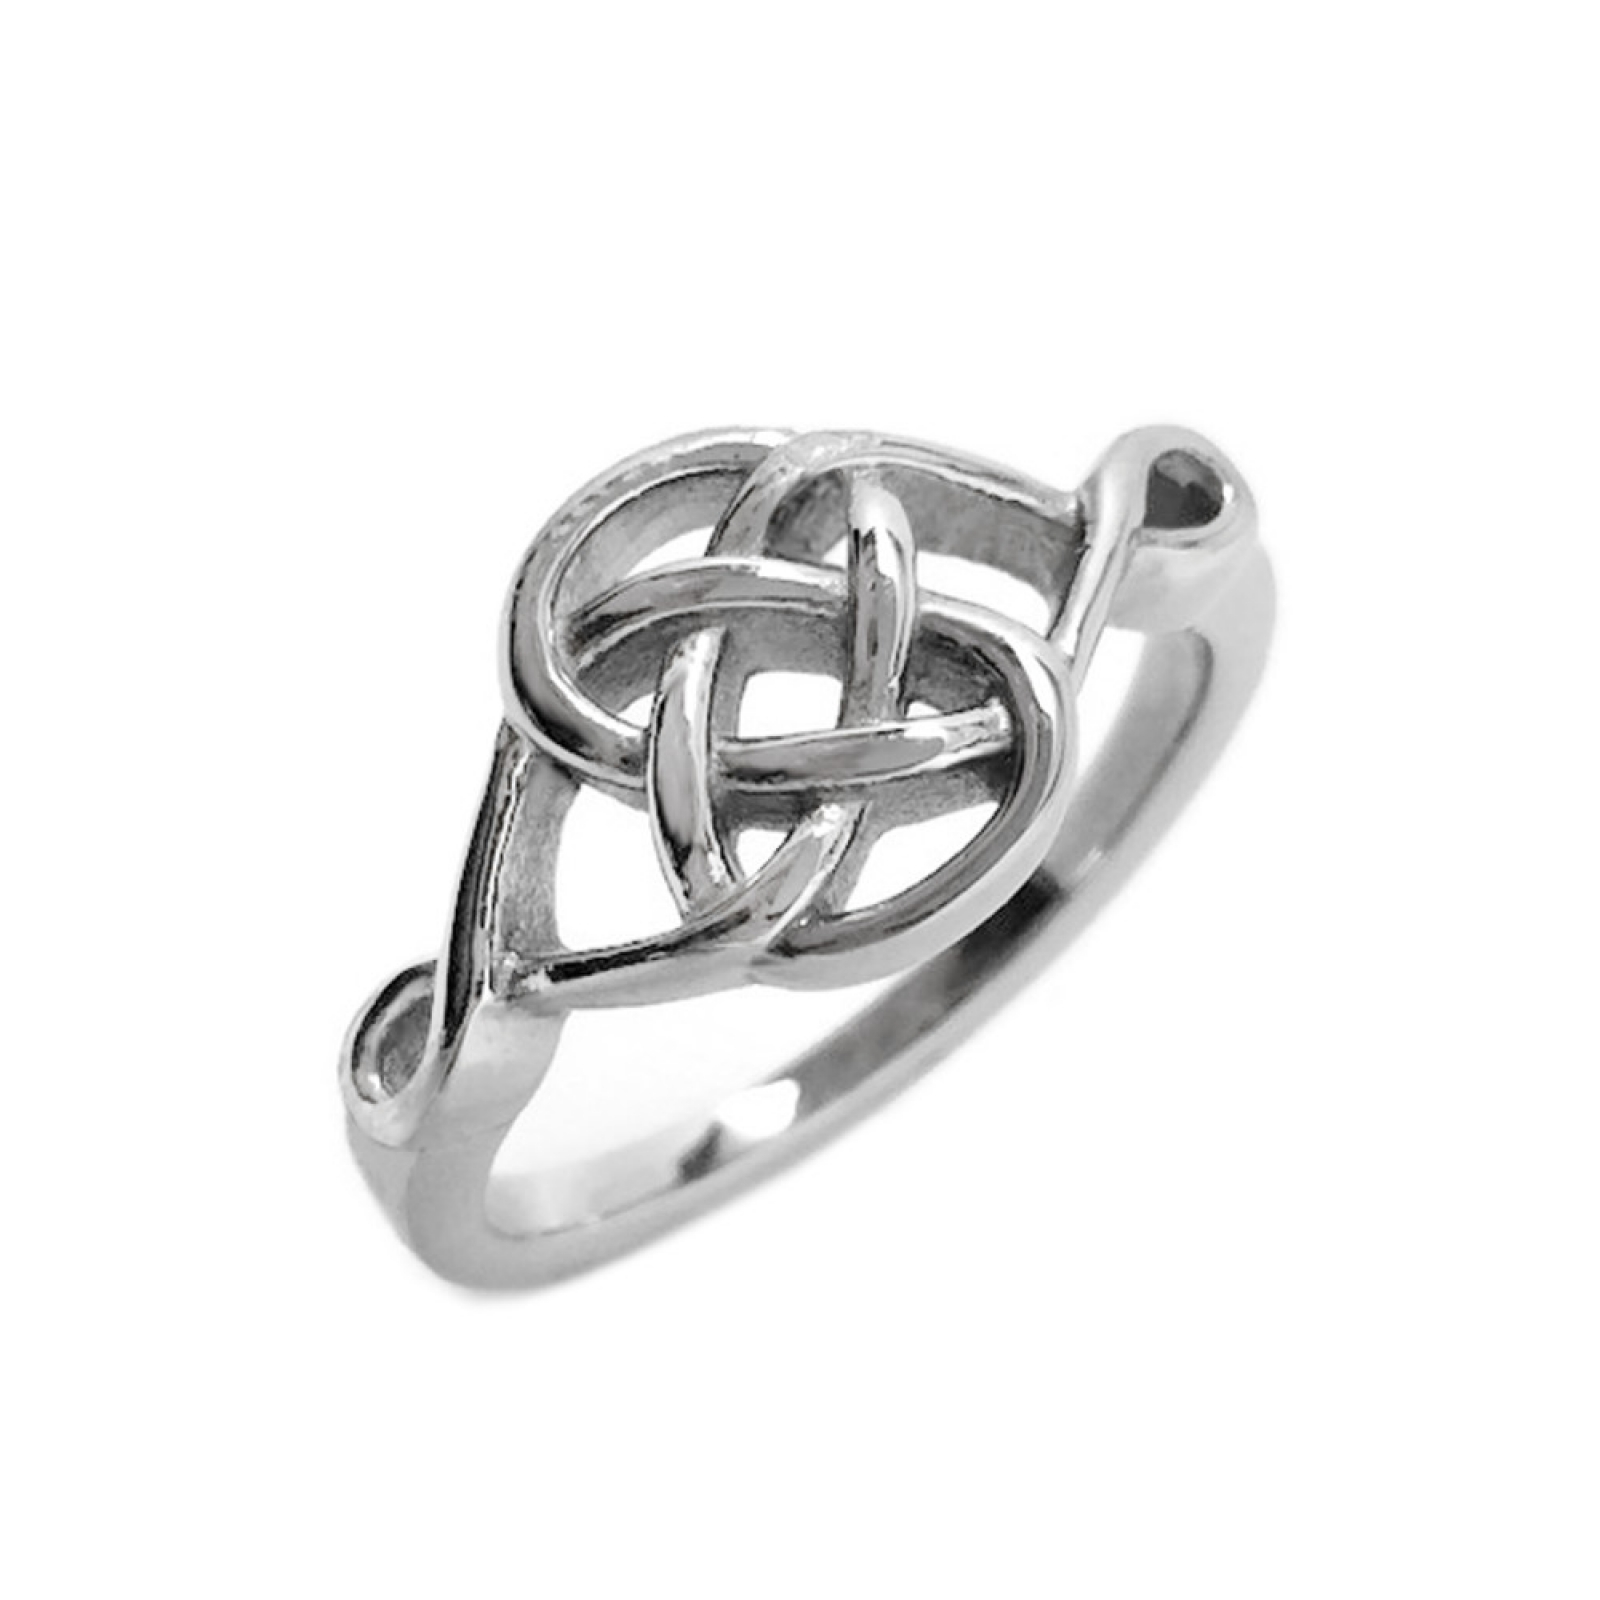 for viking warrior celt engagement silver rings titanium wedding mens walmart platinum inspirations knot enchanting band celtic bands her